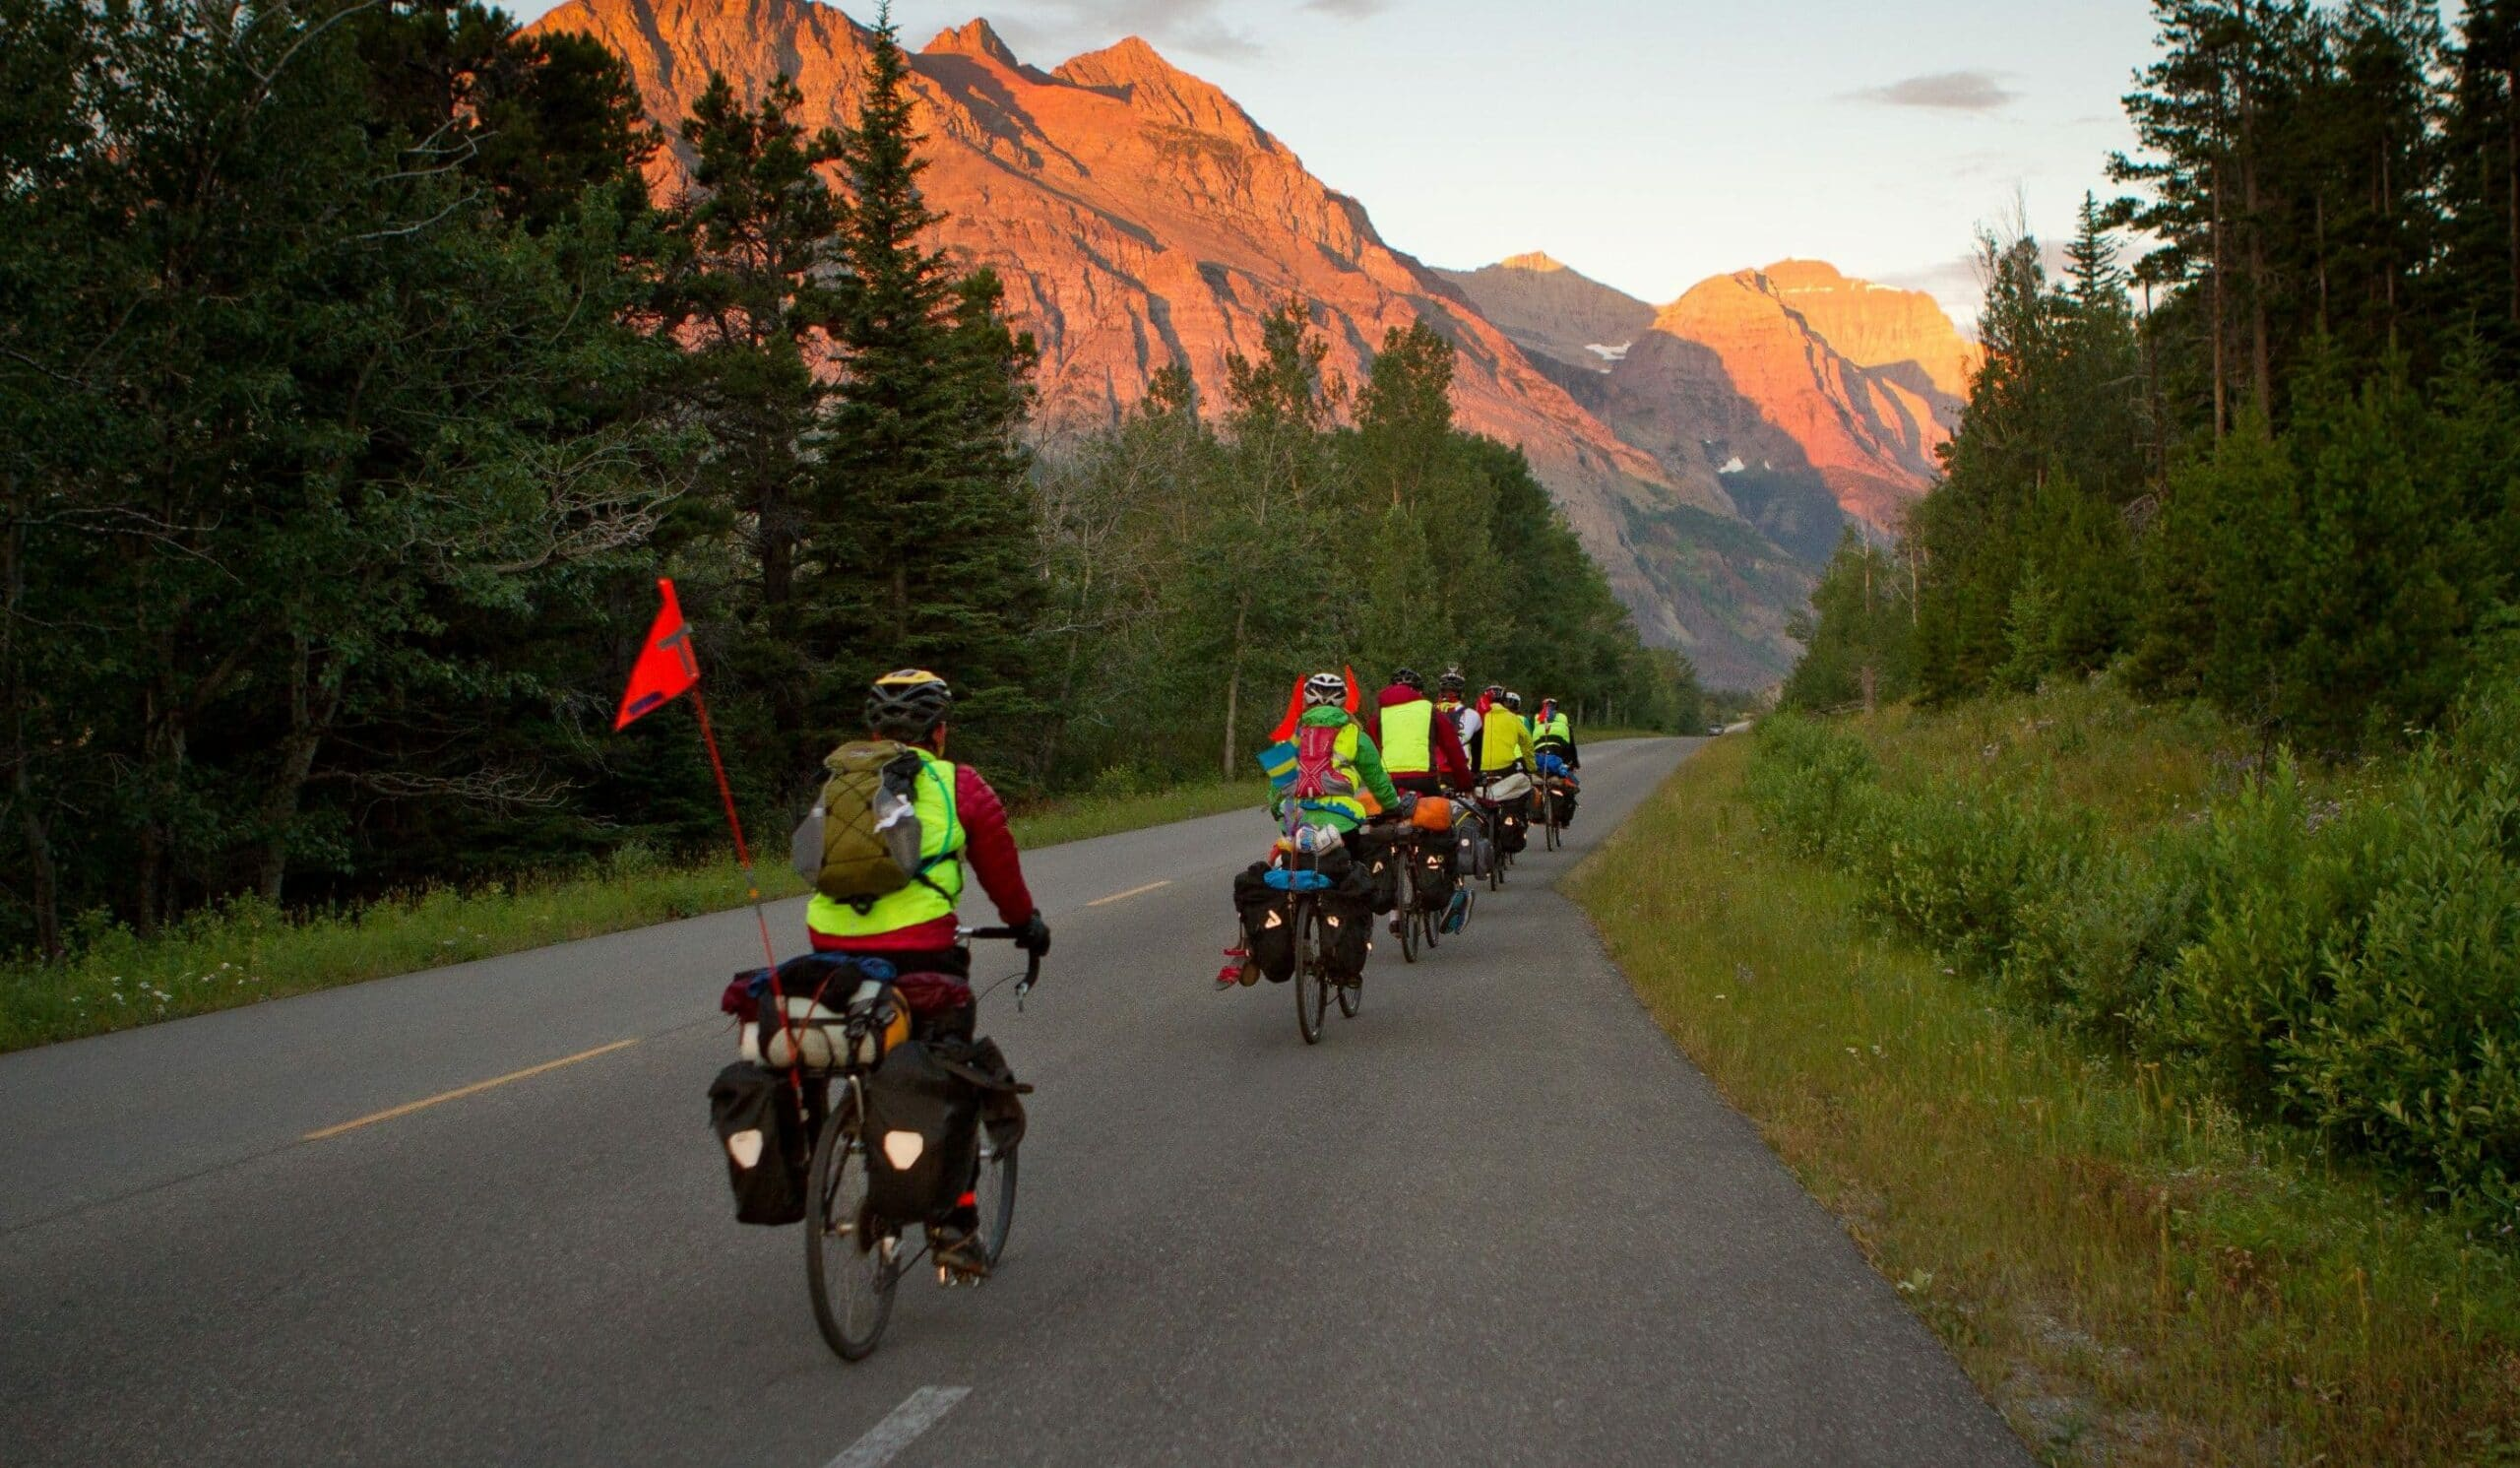 Sunrise on the mountains cycling on a teen summer biking trip in the Canadian Rockies